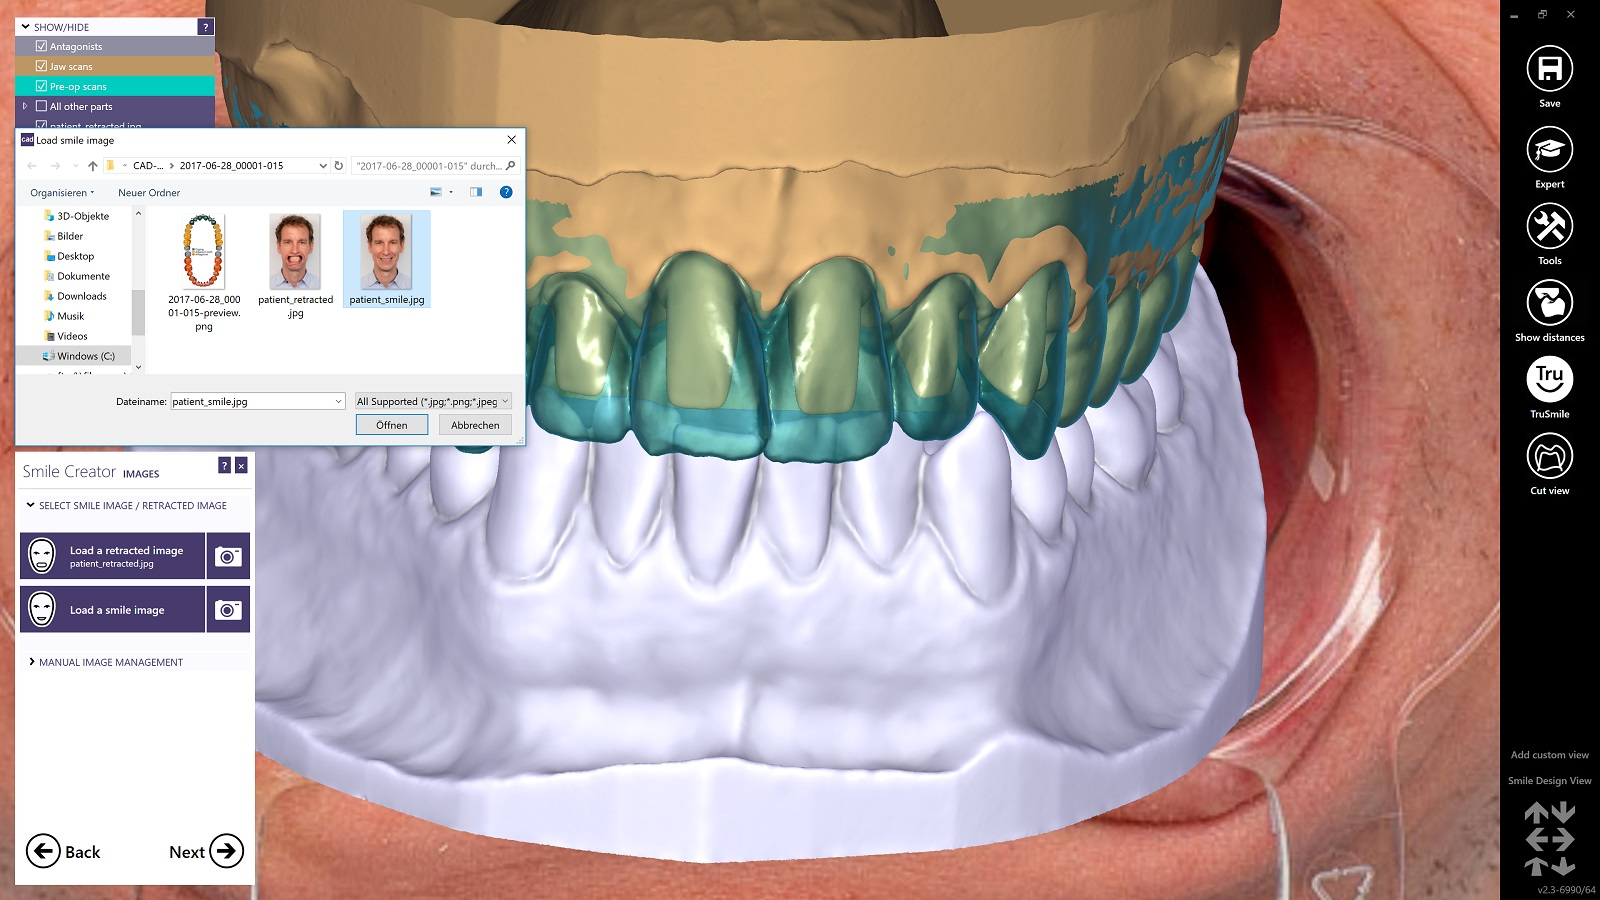 After the retracted image, the smile image can be imported